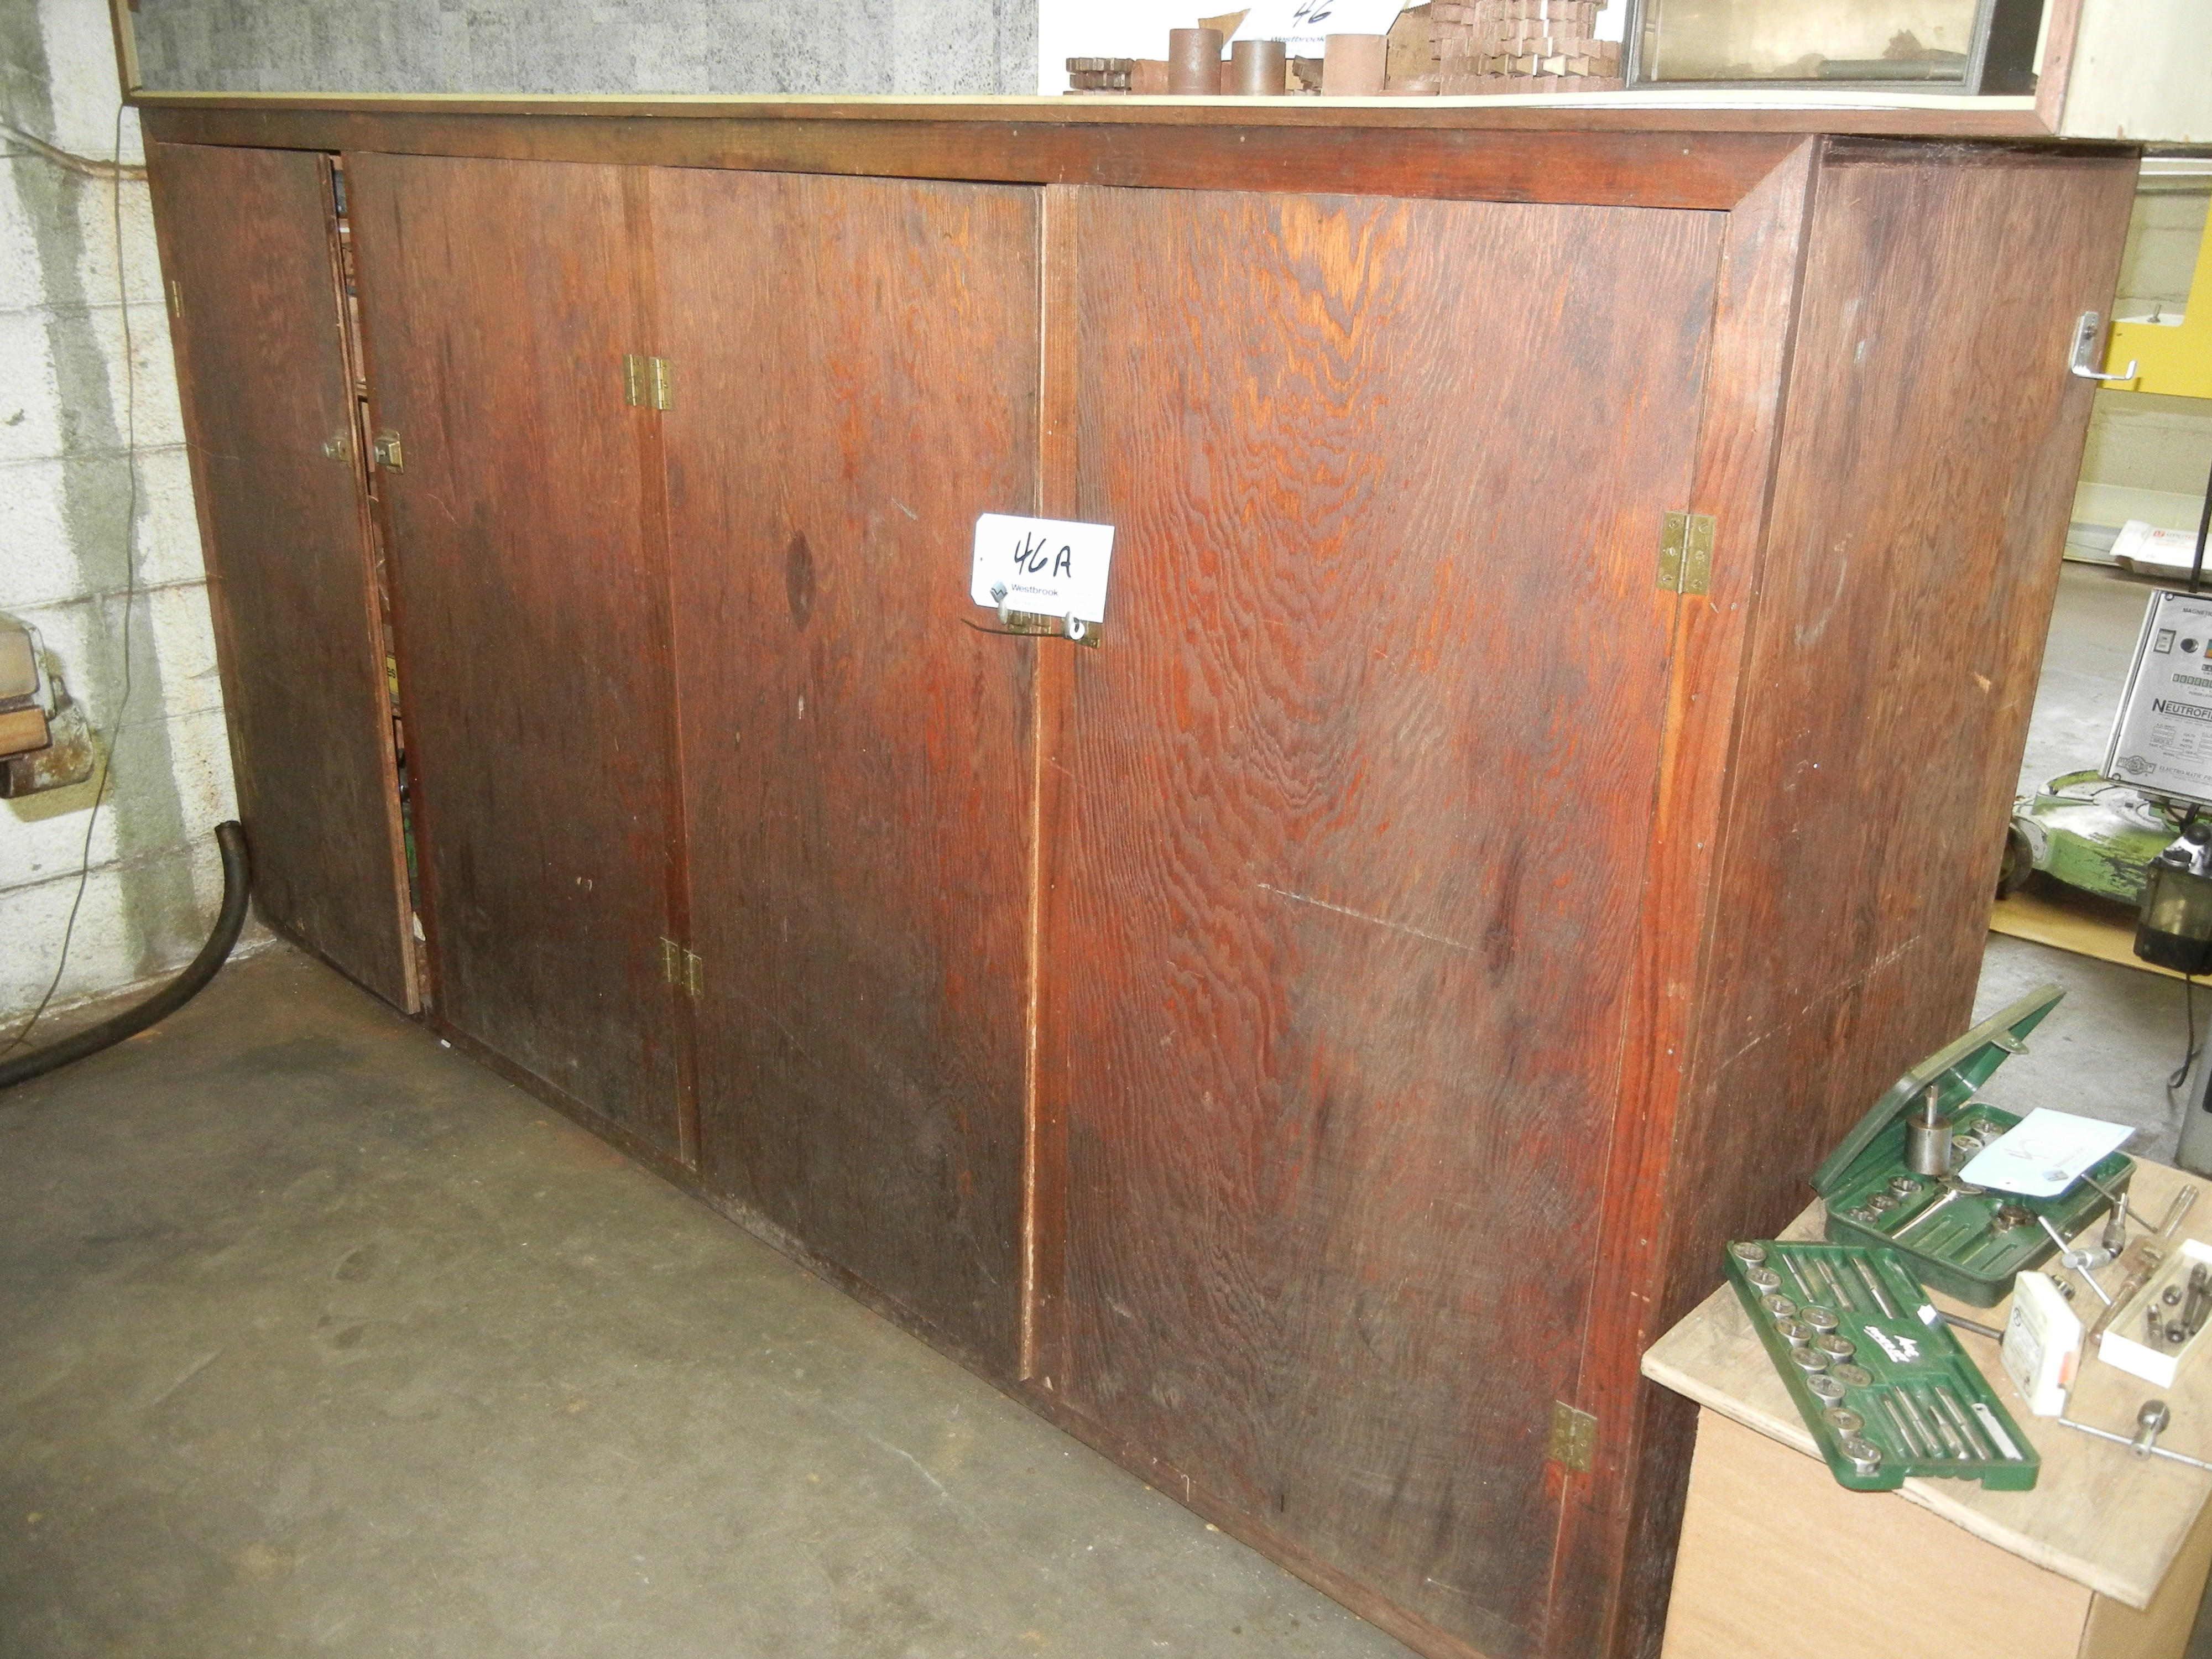 Wood cabinet (no contents)